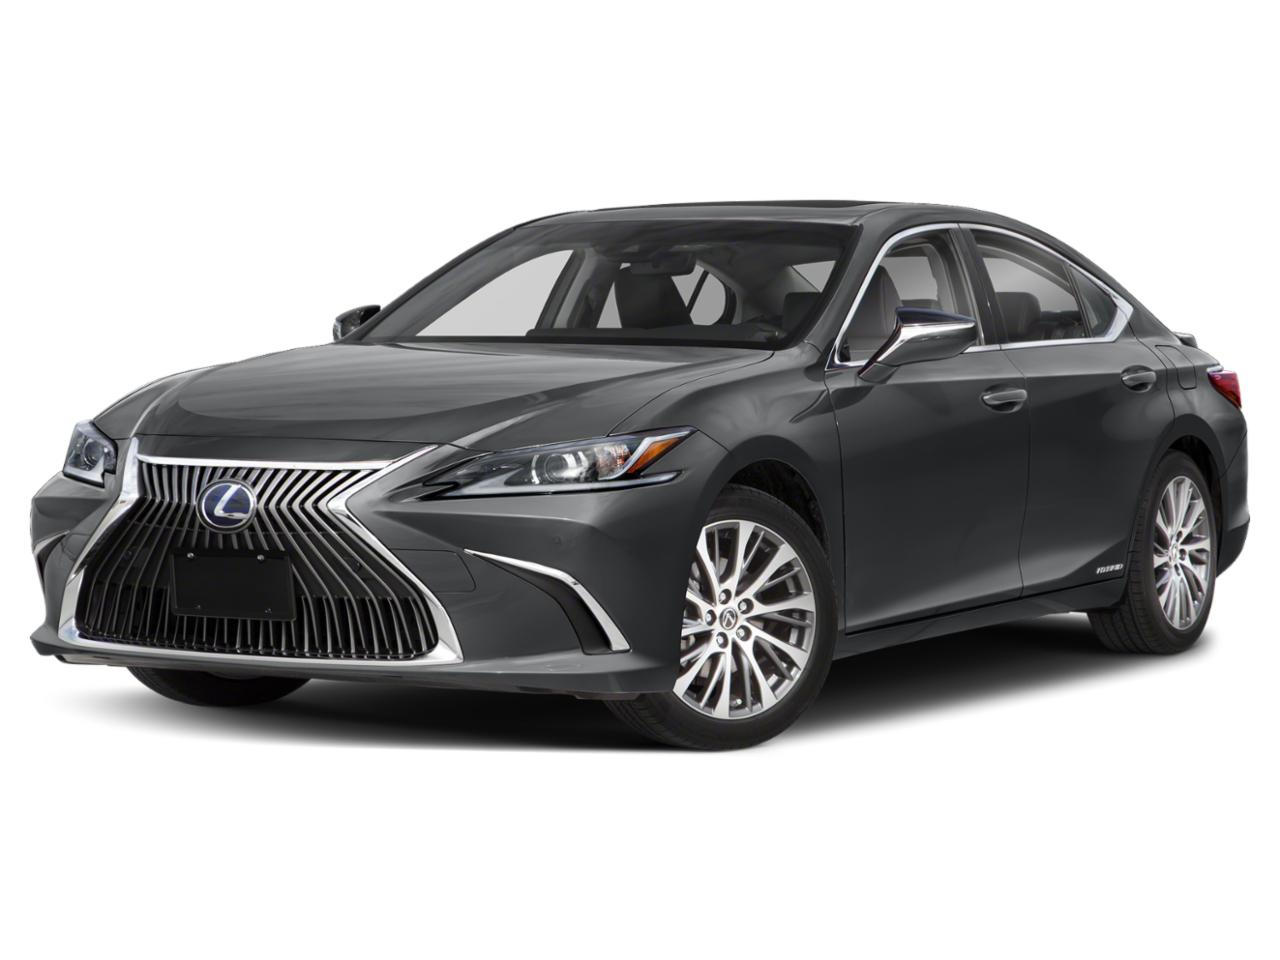 2021 Lexus ES 300h Vehicle Photo in Dallas, TX 75235